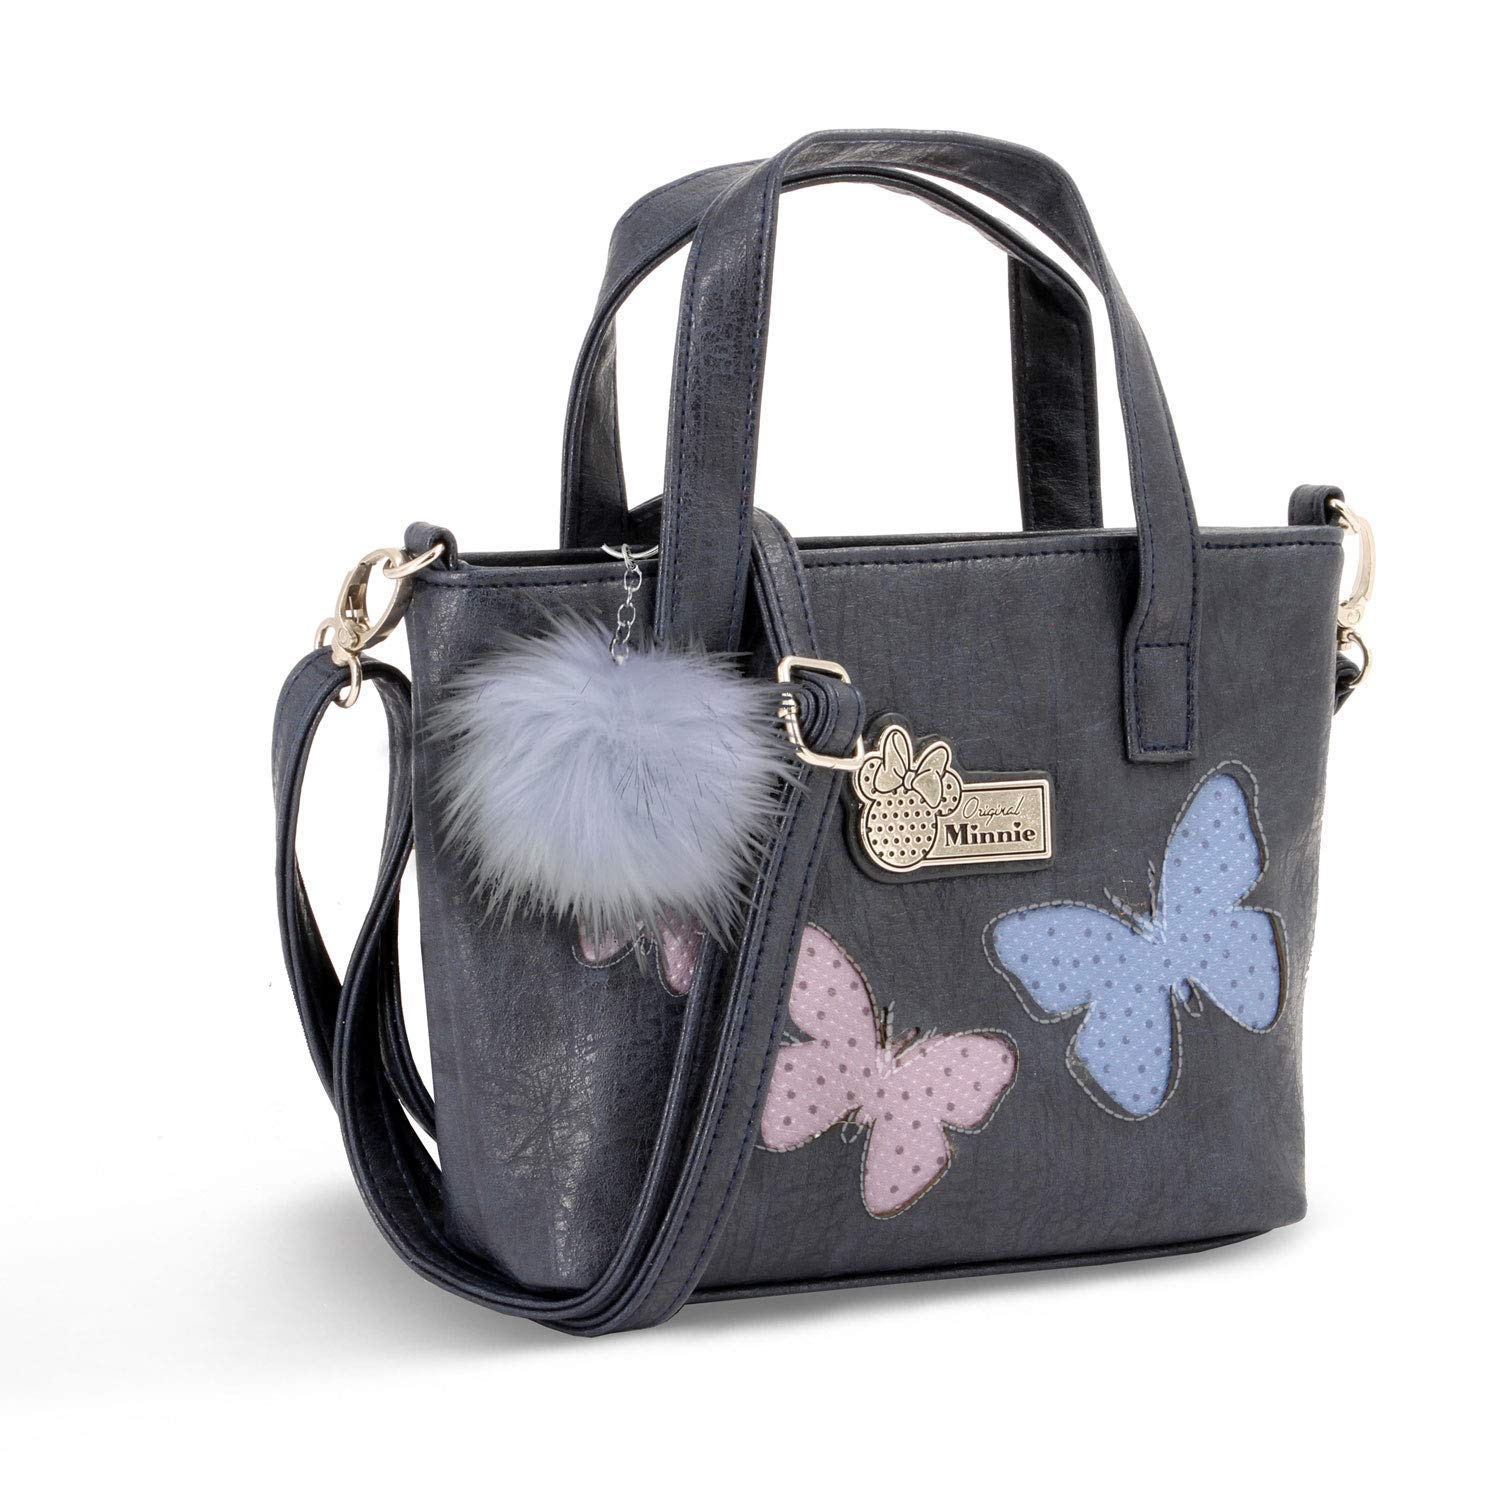 BORSA A MANO Messenger - in ECOPELLE - Disney Minnie Blufy